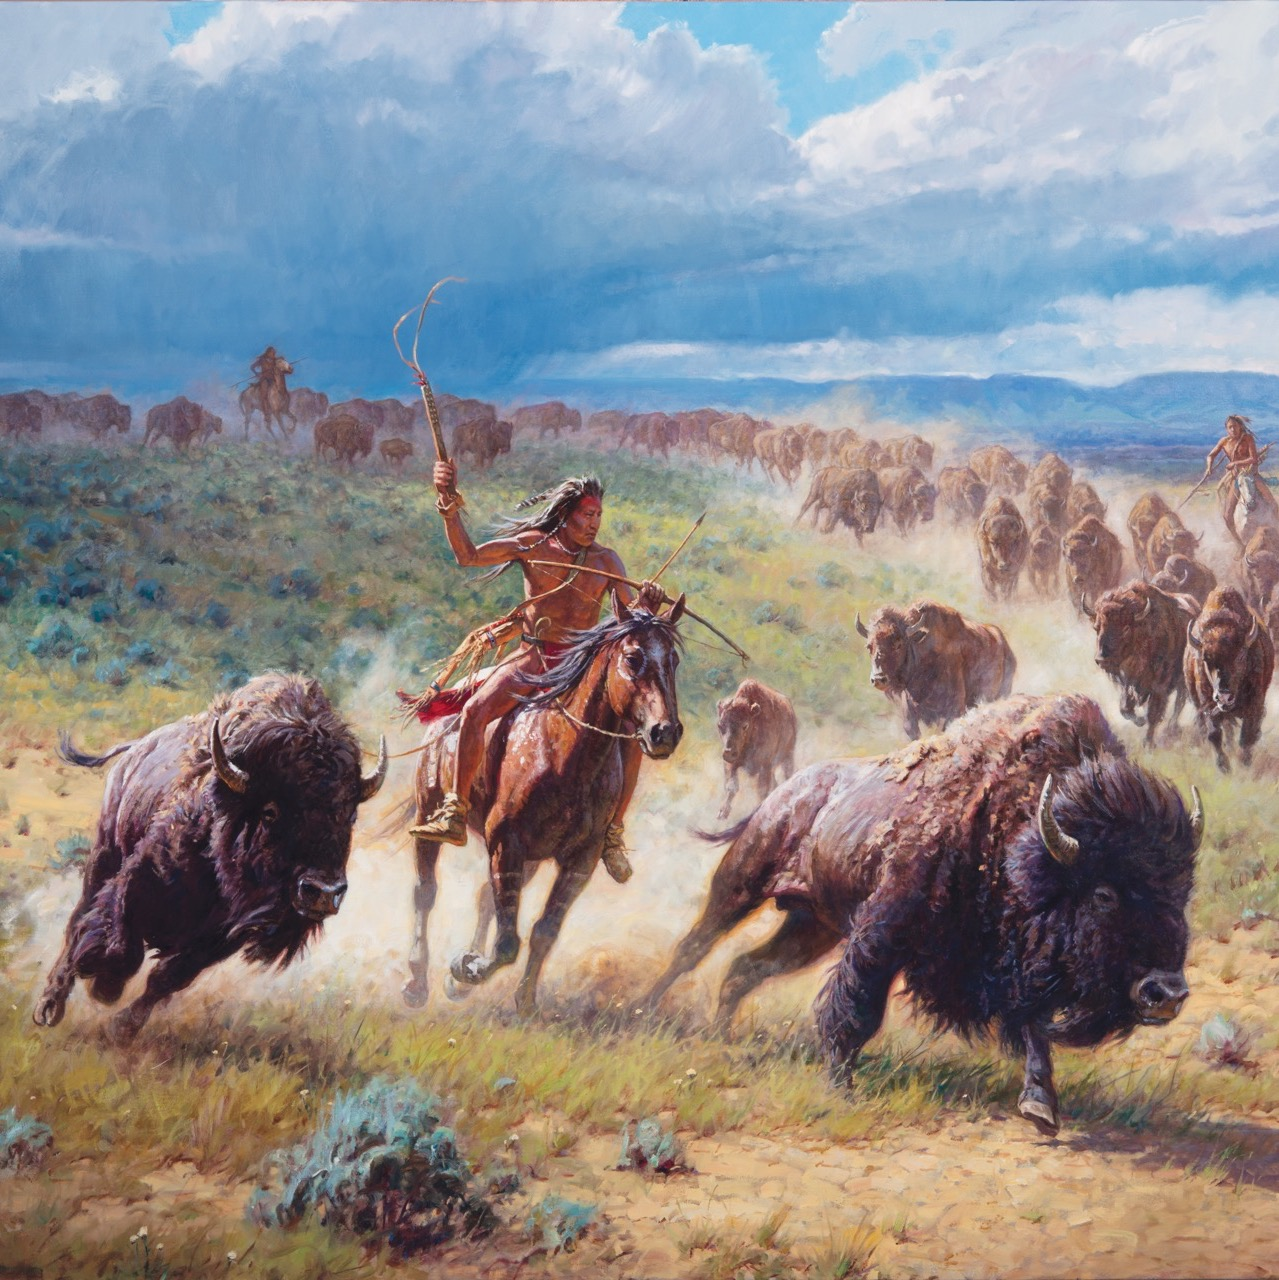 Martin Grelle – Bound by Heart and Paint